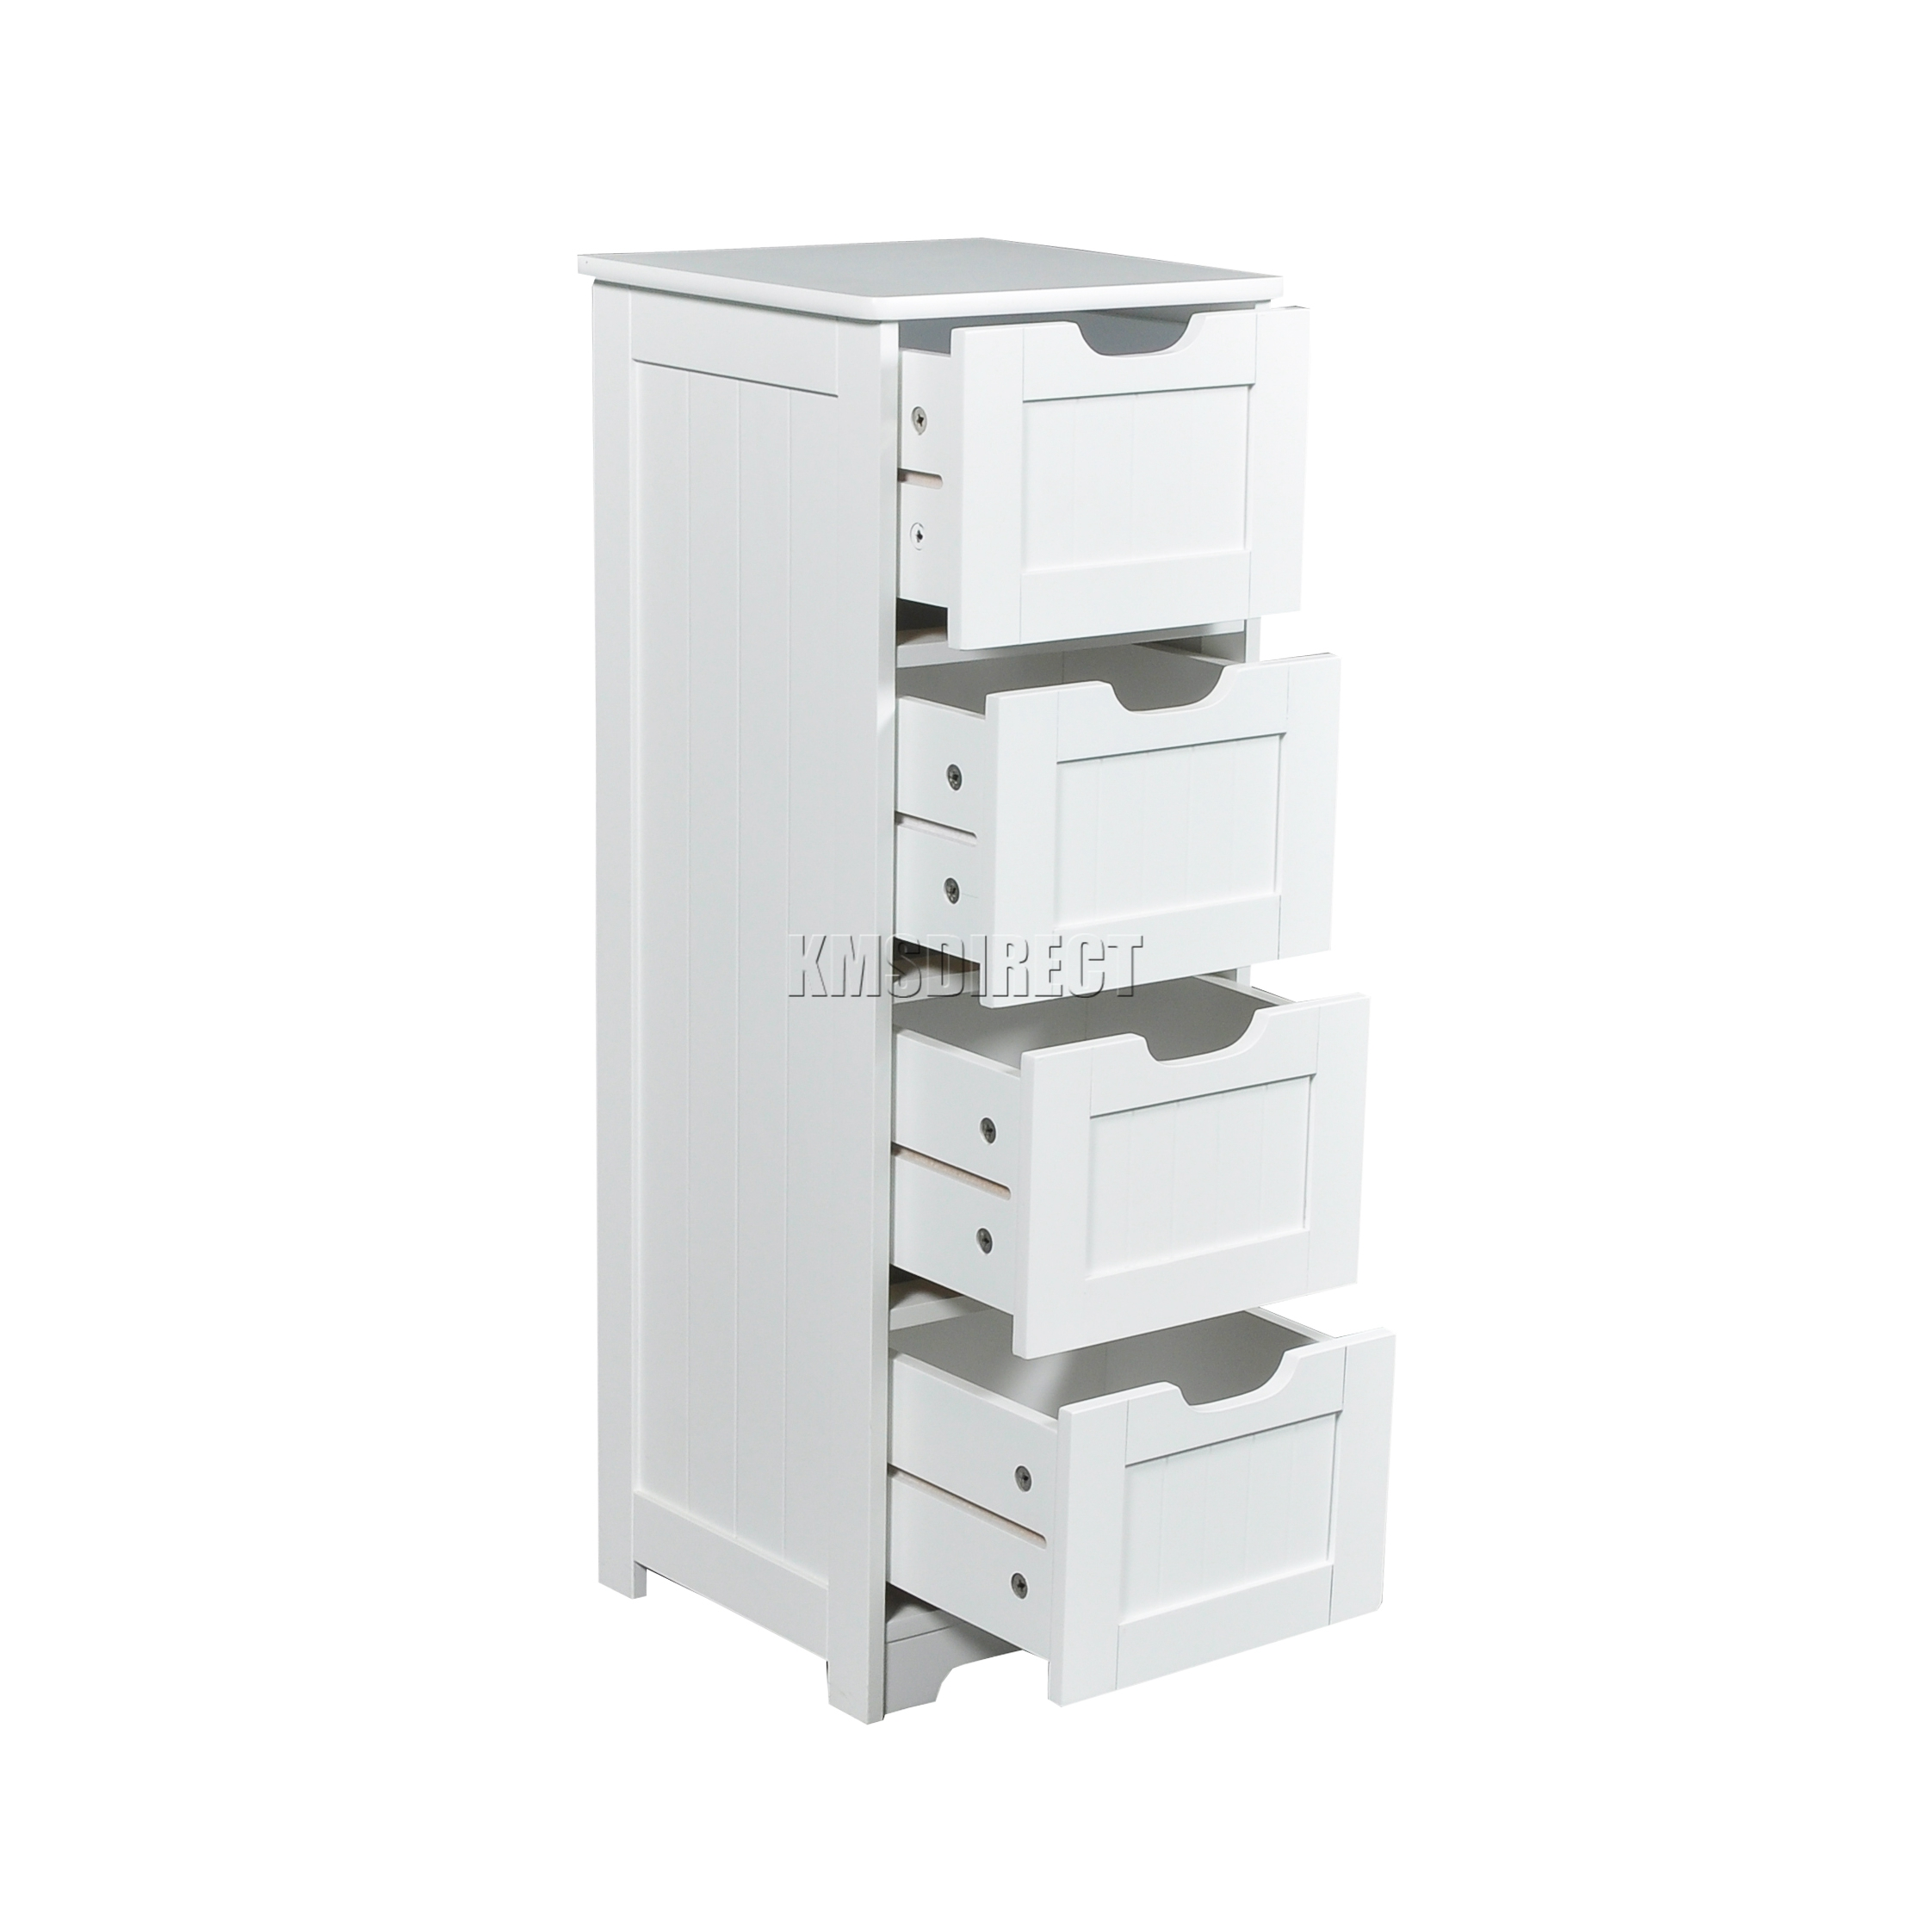 Foxhunter White Wooden 4 Drawer Bathroom Storage Cupboard Cabinet Organizer Unit Ebay